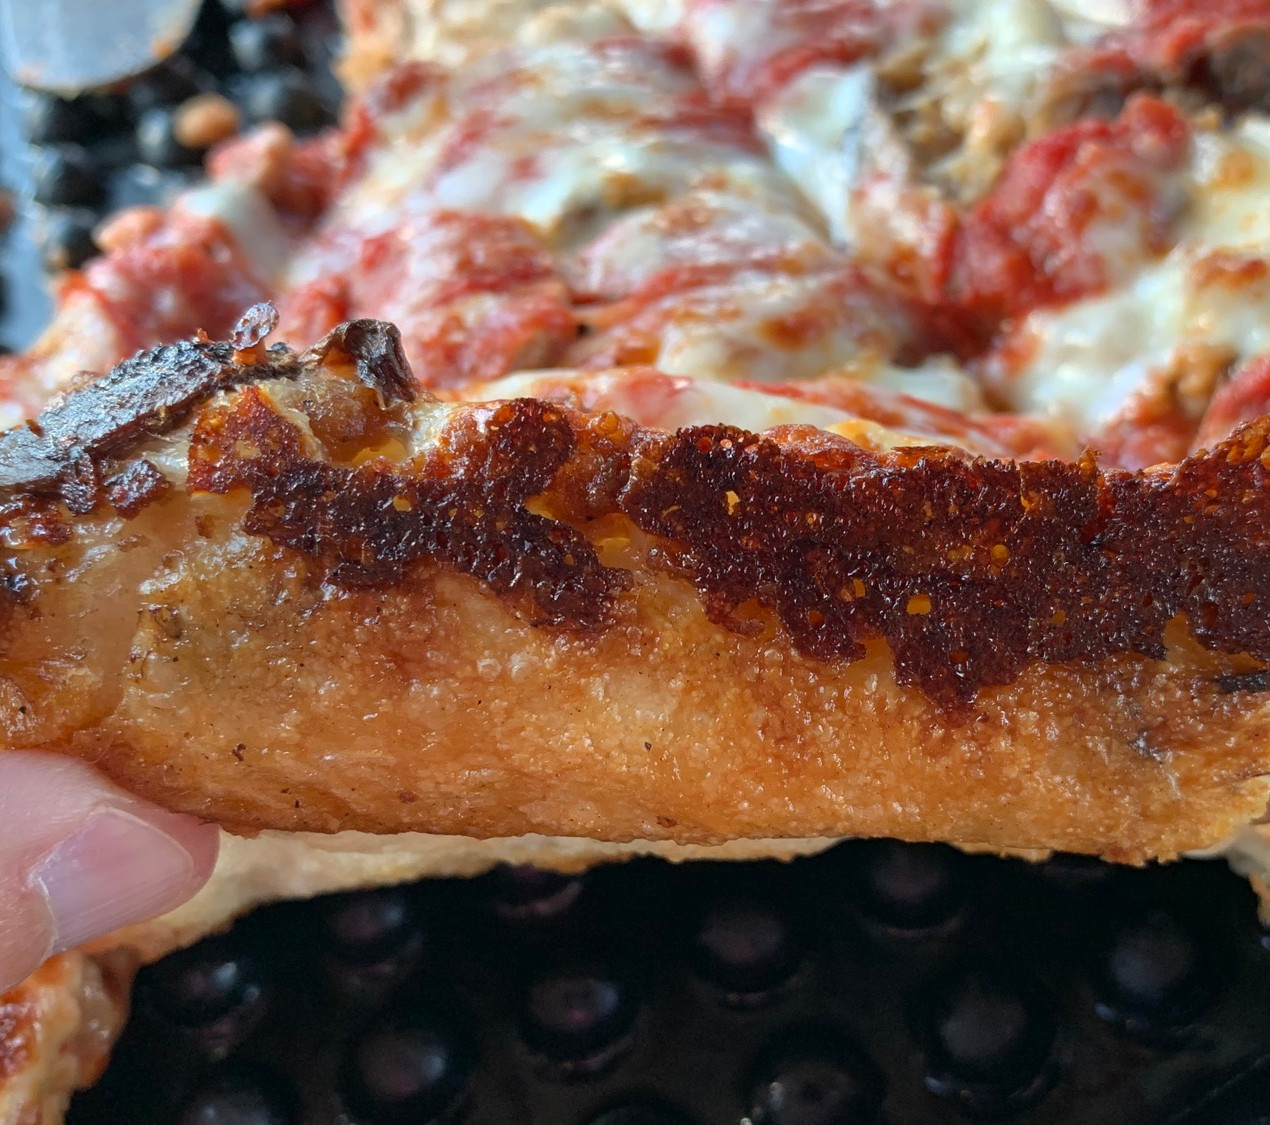 crispy edges on crust at chicago's pizza